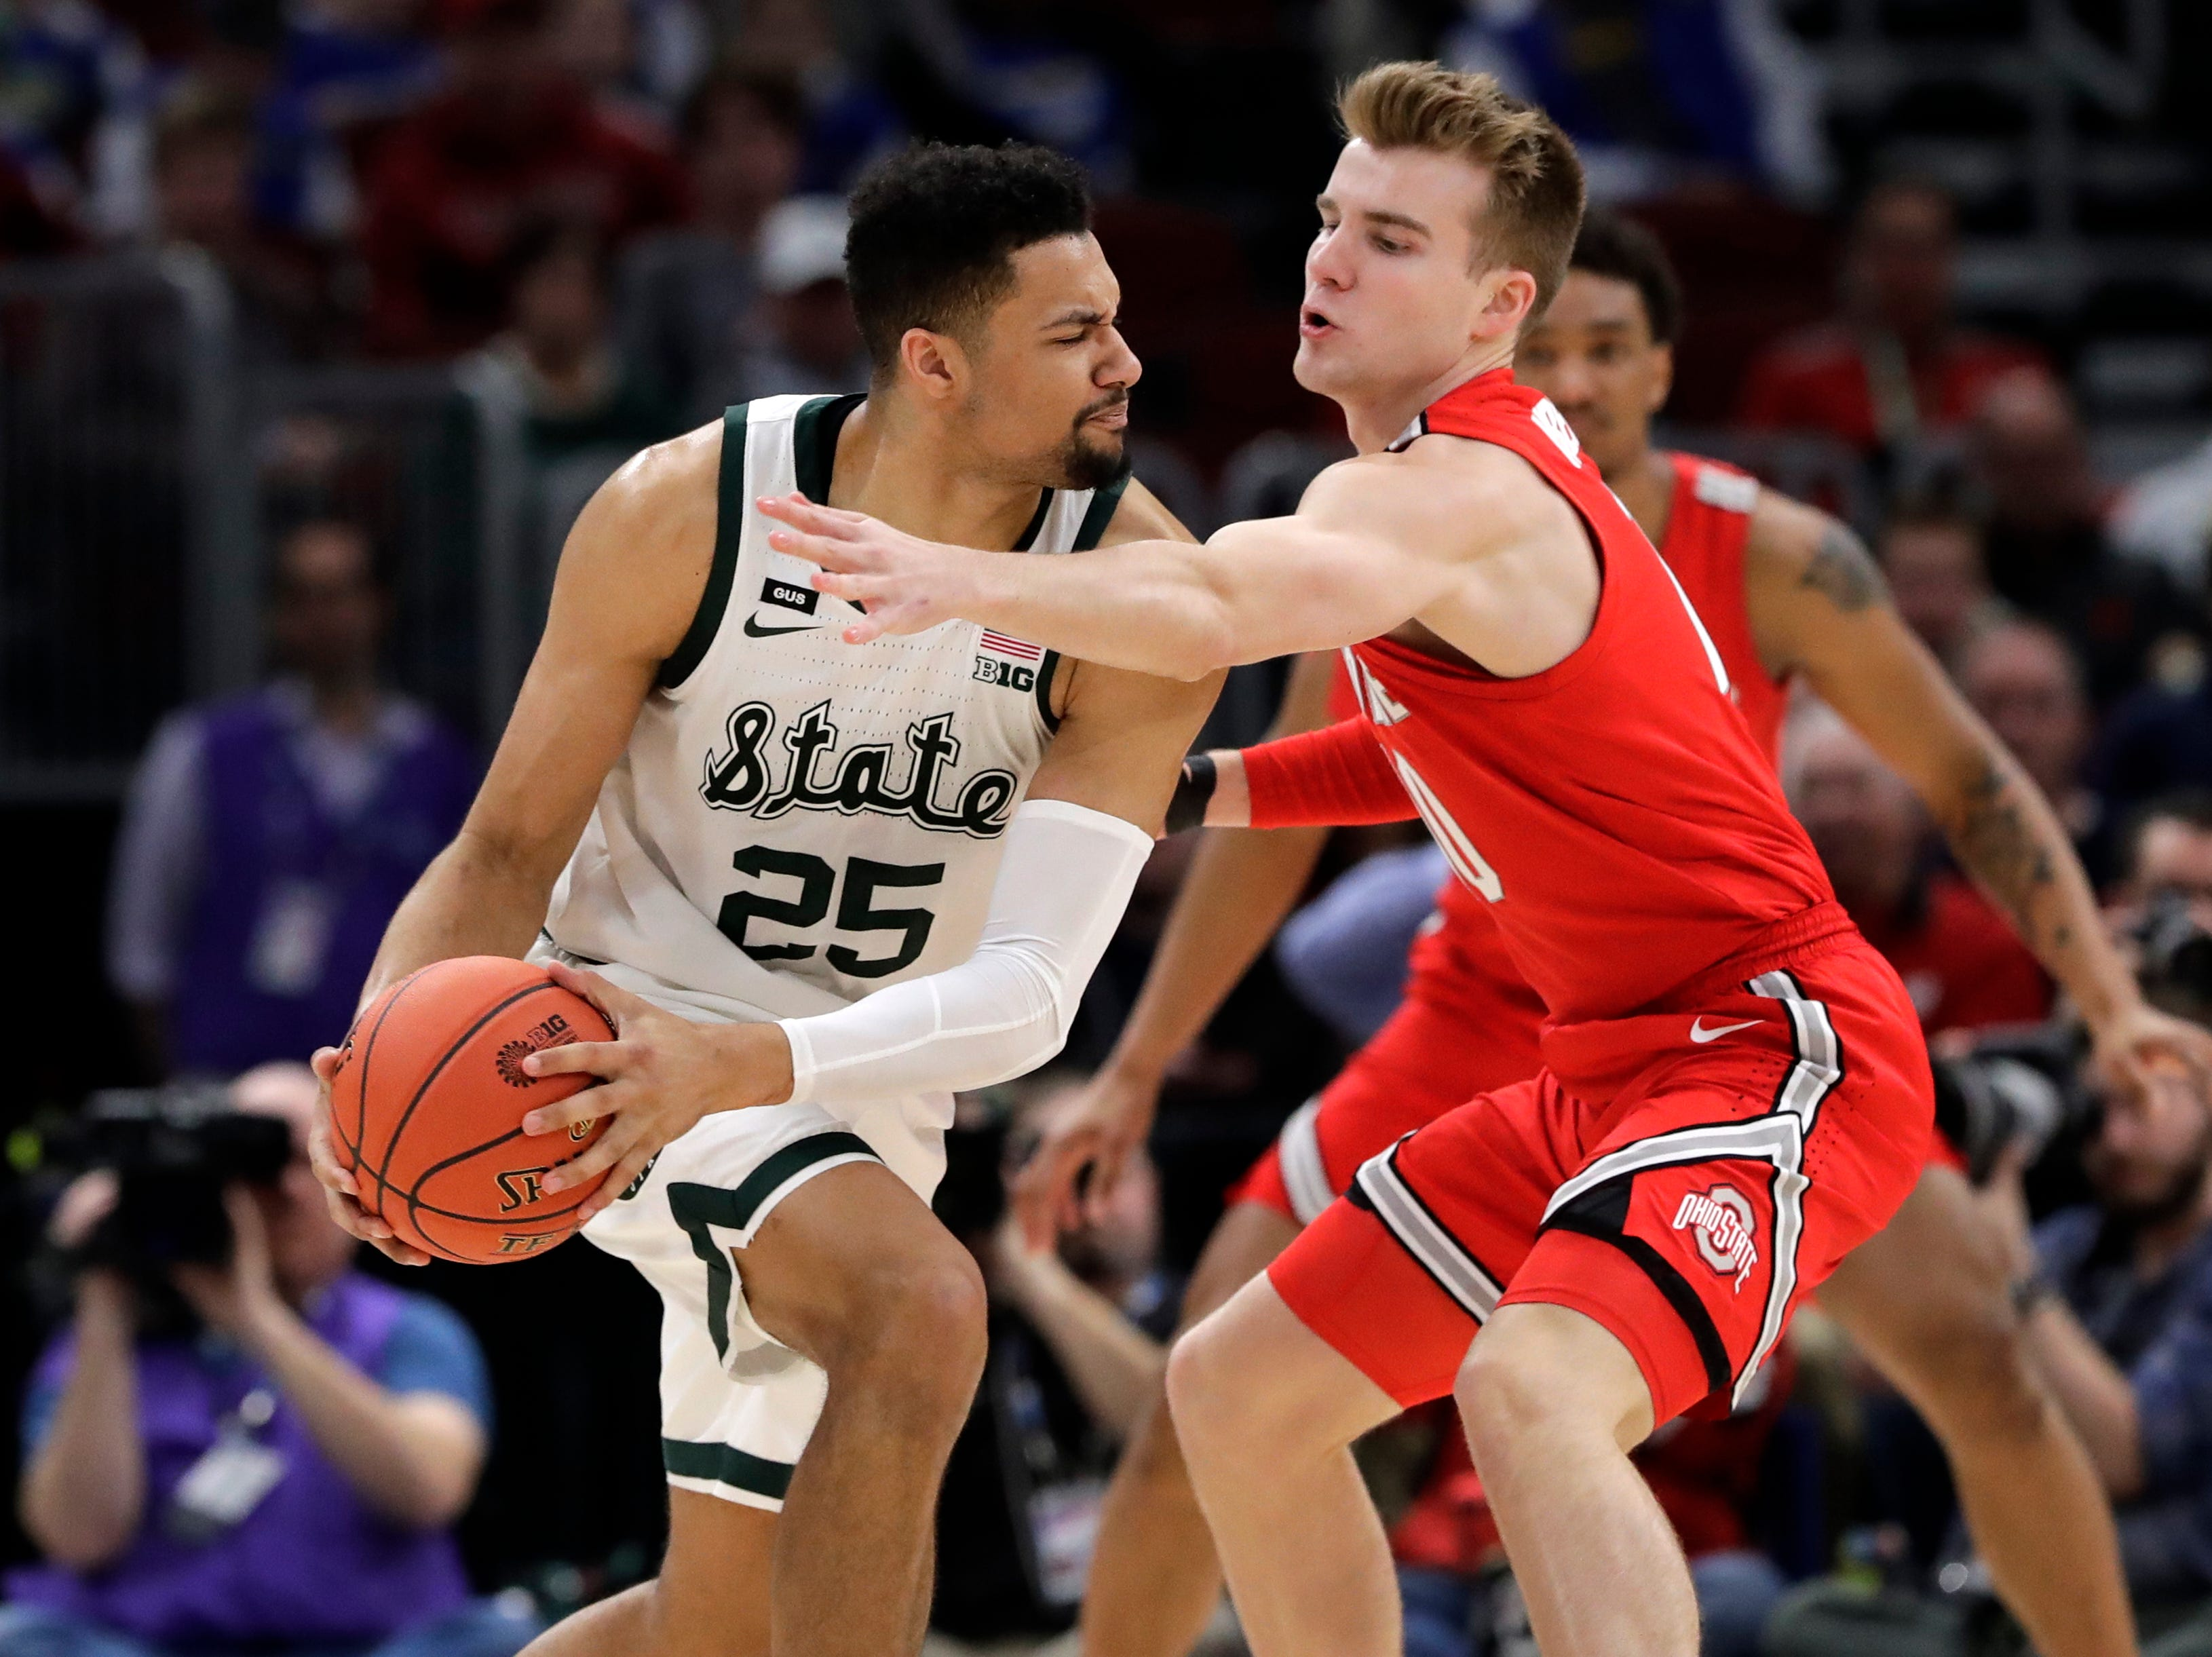 Michigan State's Kenny Goins (25) looks to pass the ball against Ohio State's Justin Ahrens during the first half.